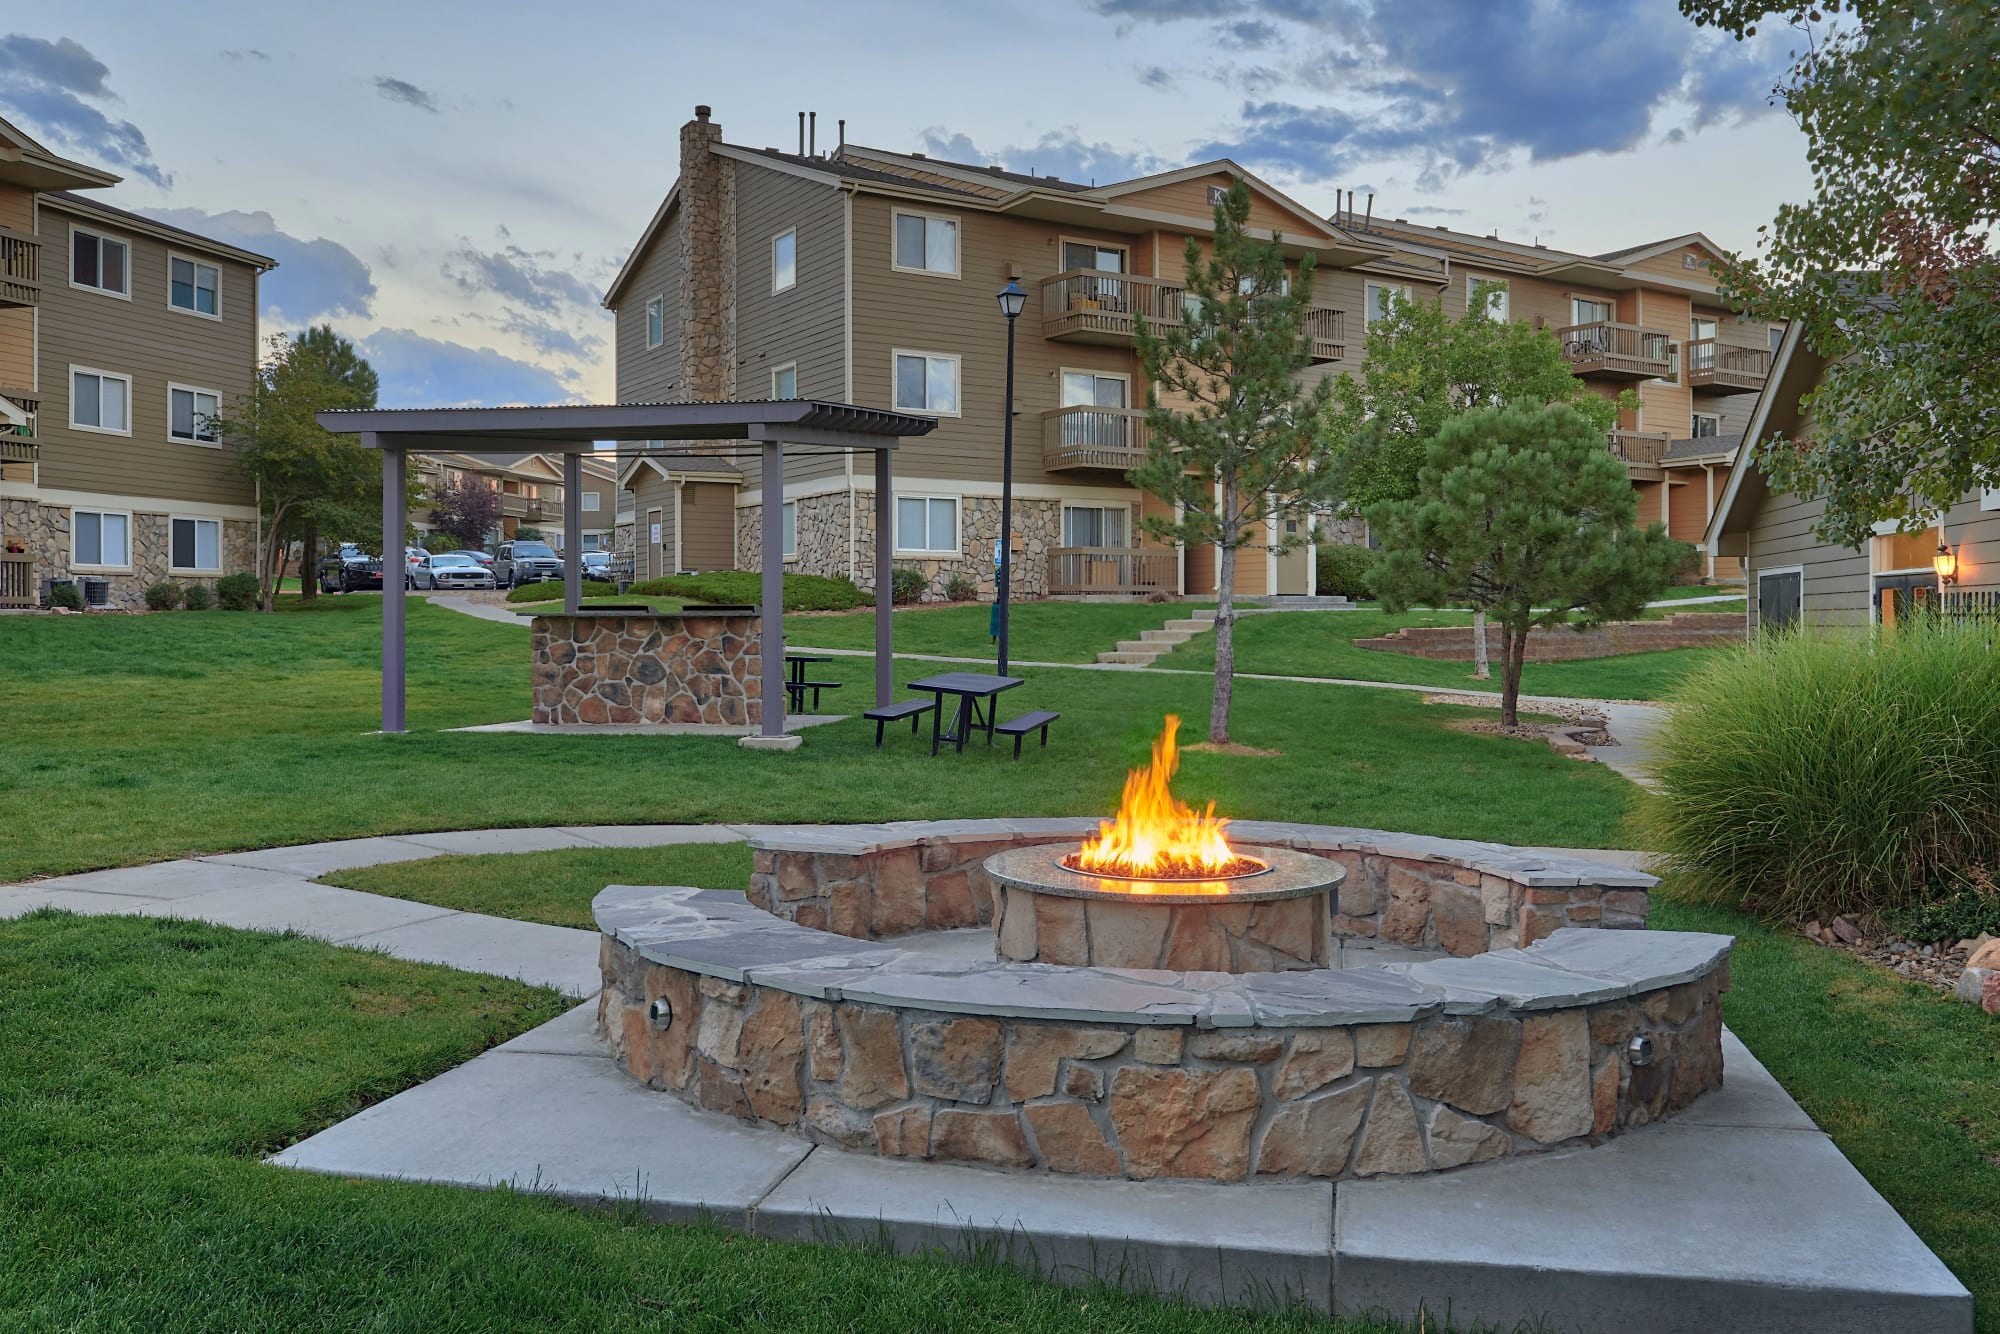 Covered barbecue area and fire pit at sunset at Crossroads at City Center Apartments in Aurora, Colorado